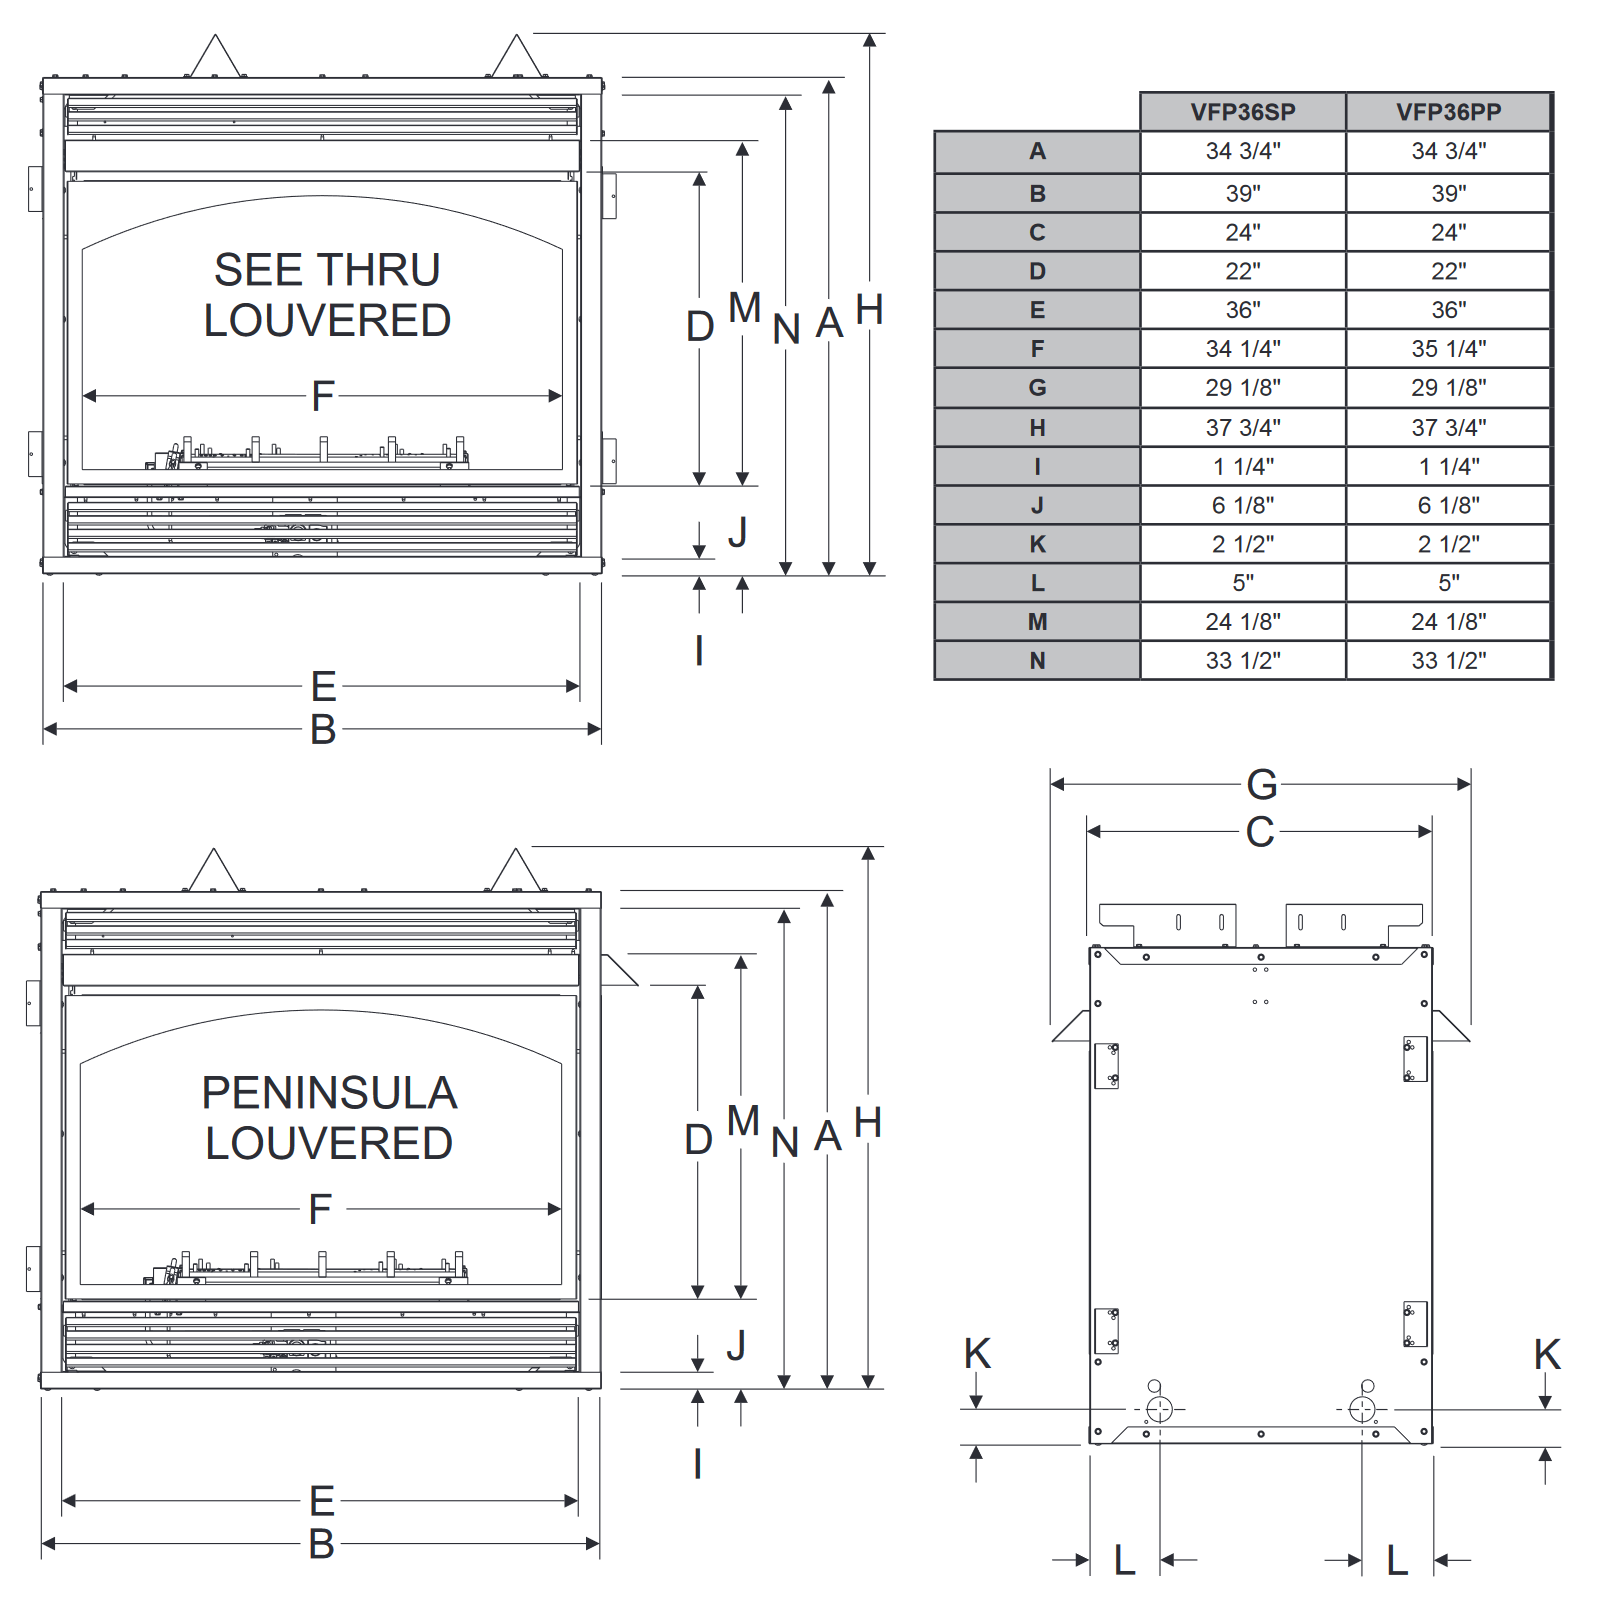 VFP36 Technical Drawing 1